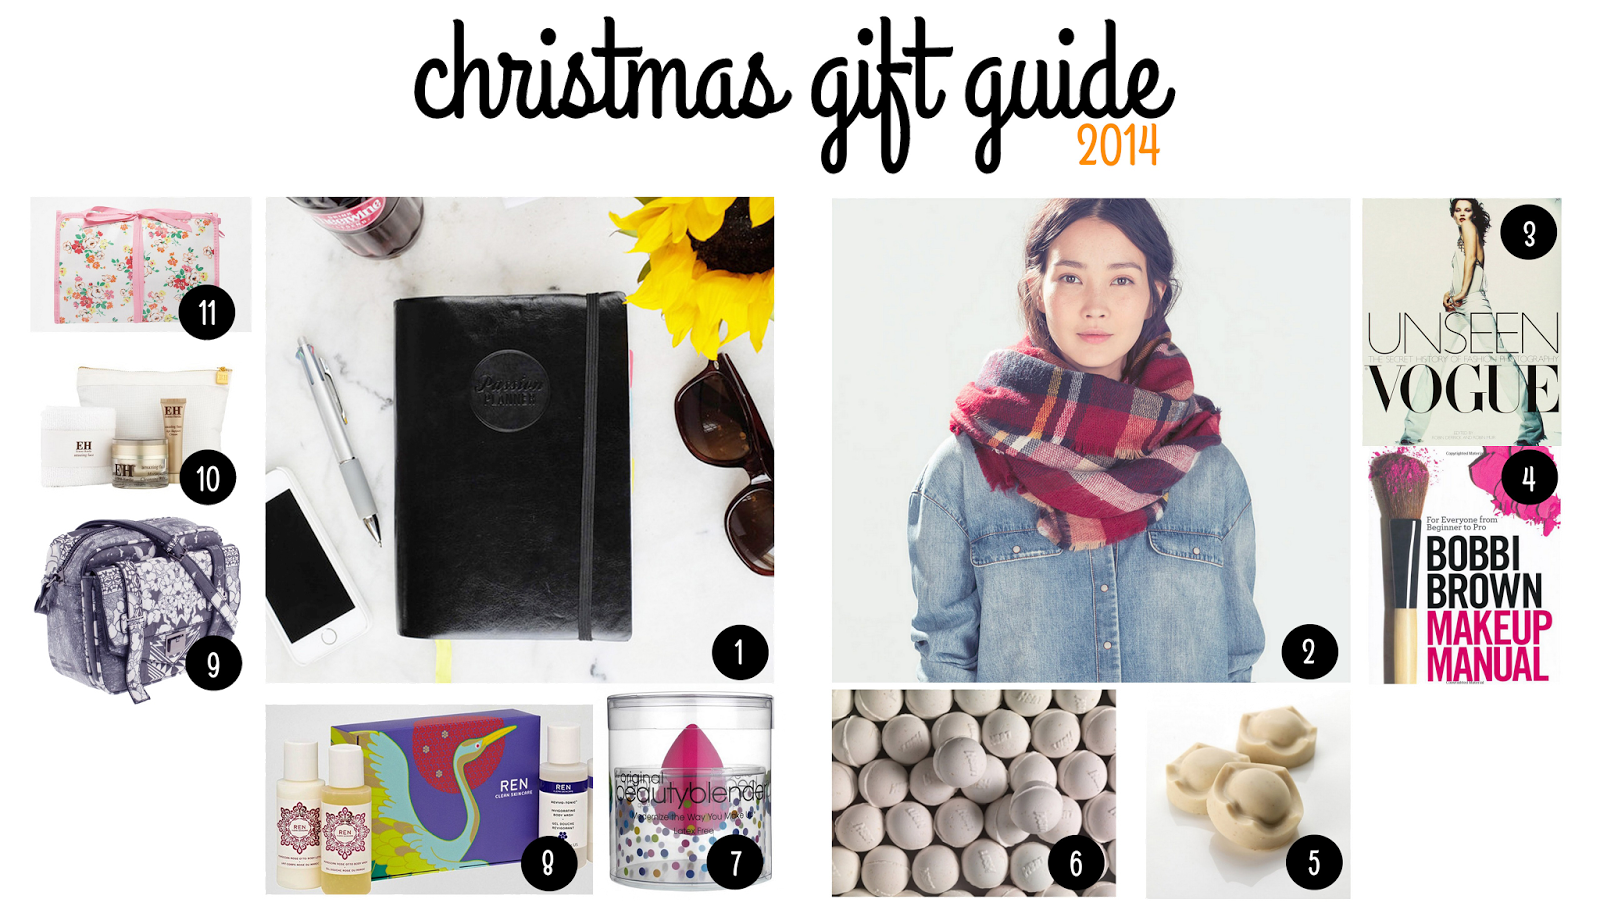 Christmas gift guide under €35